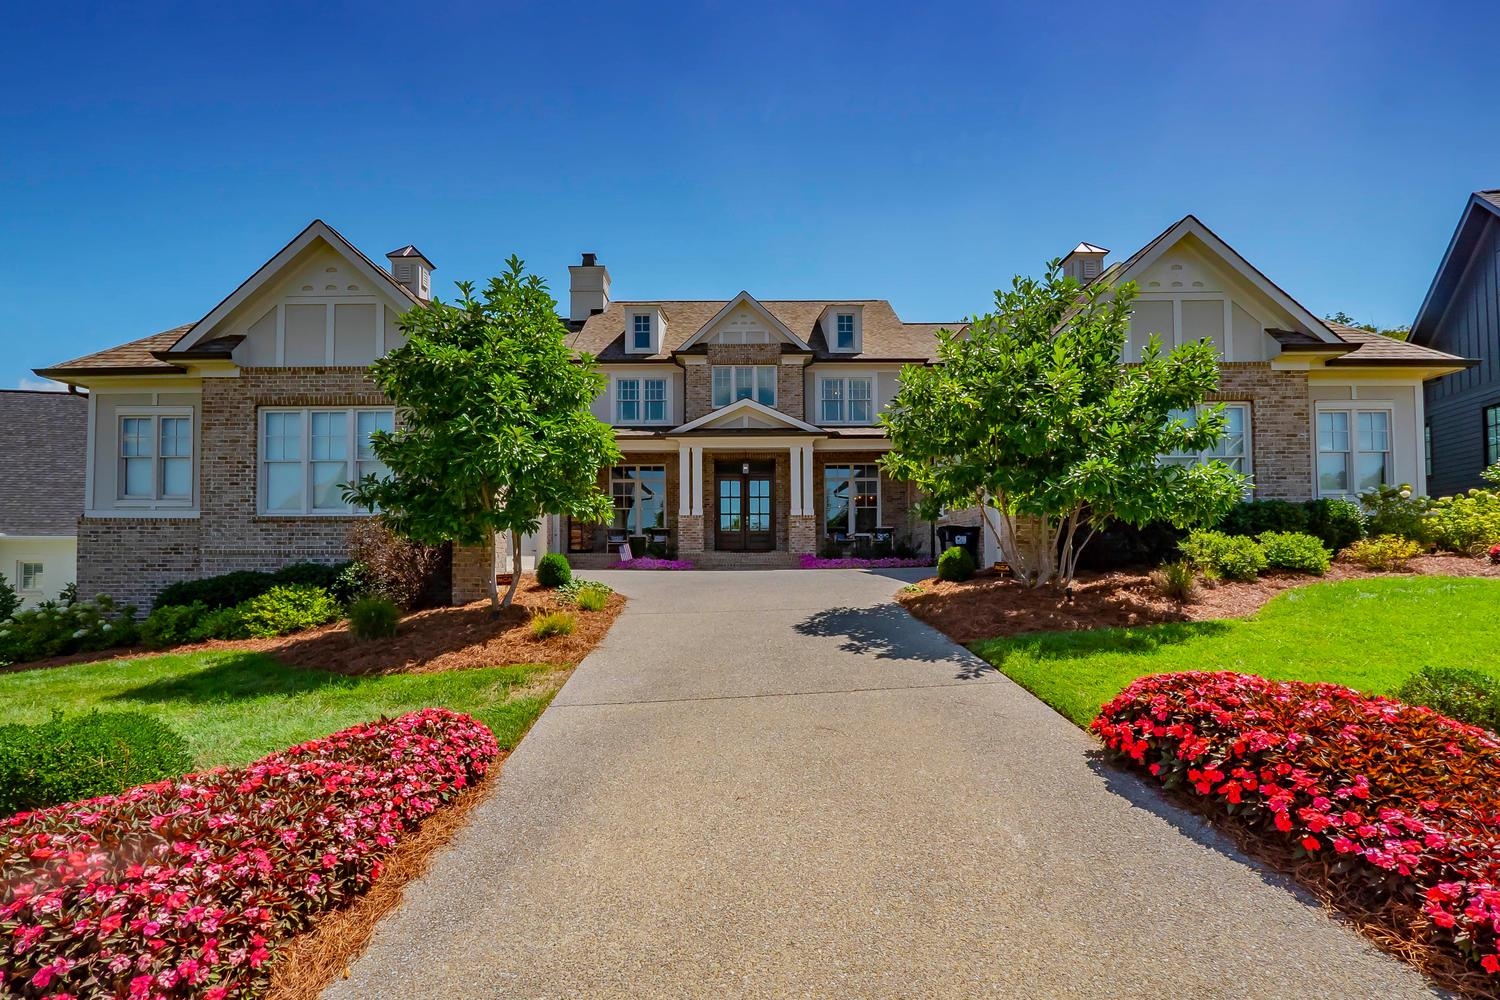 $1,695,000 - 5Br/7Ba -  for Sale in The Grove, College Grove